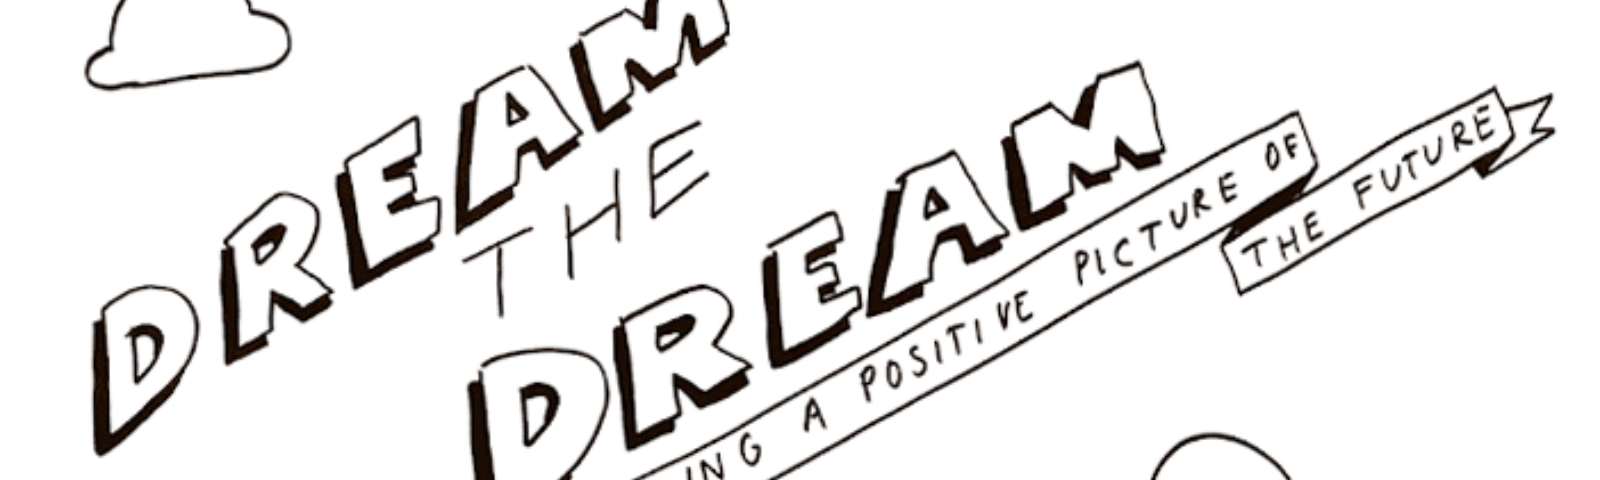 "Hand-drawn poster headline saying ""Dream the dream"""